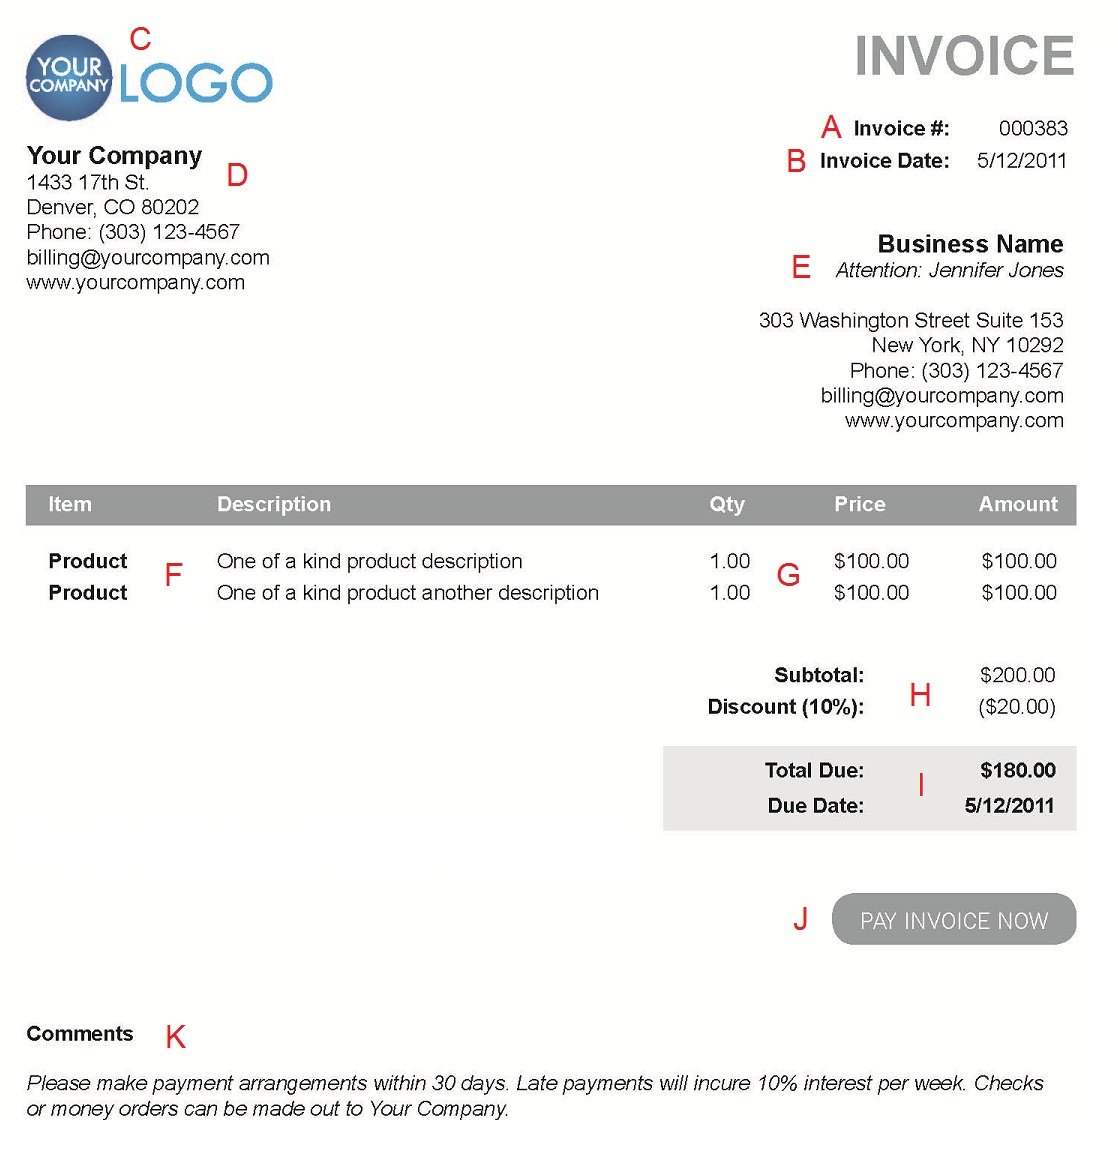 Totallocalus  Winsome The  Different Sections Of An Electronic Payment Invoice With Outstanding A  With Delightful Invoice Issuance Also Software For Invoice In Addition Invoice Account And Tax Invoice Requirements Australia As Well As Car Service Invoice Template Additionally Pro Forma Invoice Sample From Paysimplecom With Totallocalus  Outstanding The  Different Sections Of An Electronic Payment Invoice With Delightful A  And Winsome Invoice Issuance Also Software For Invoice In Addition Invoice Account From Paysimplecom